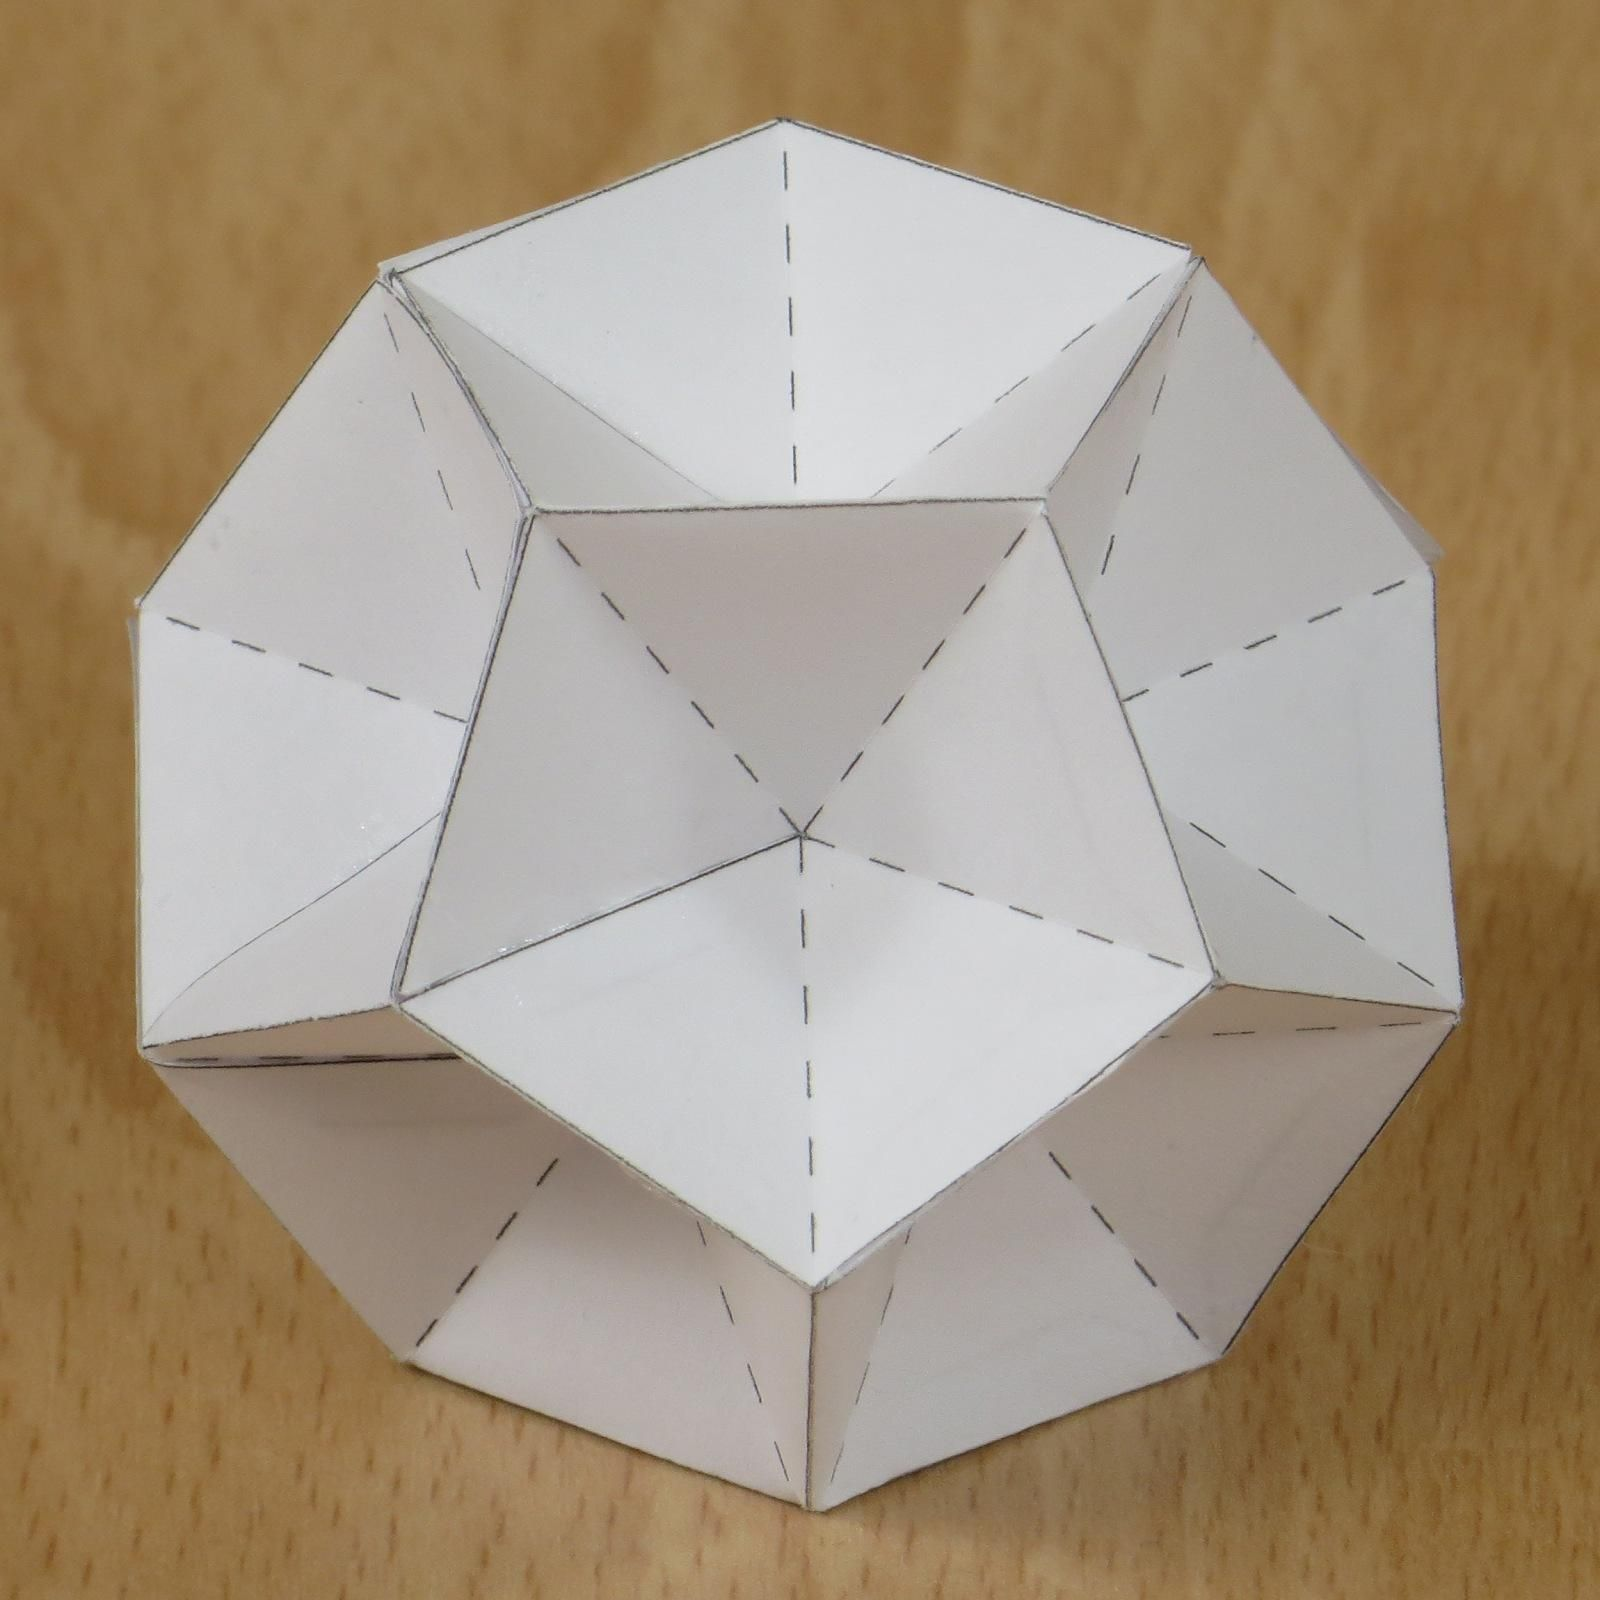 third stellation of the icosahedron | Ideas | Paper models ... - photo#48